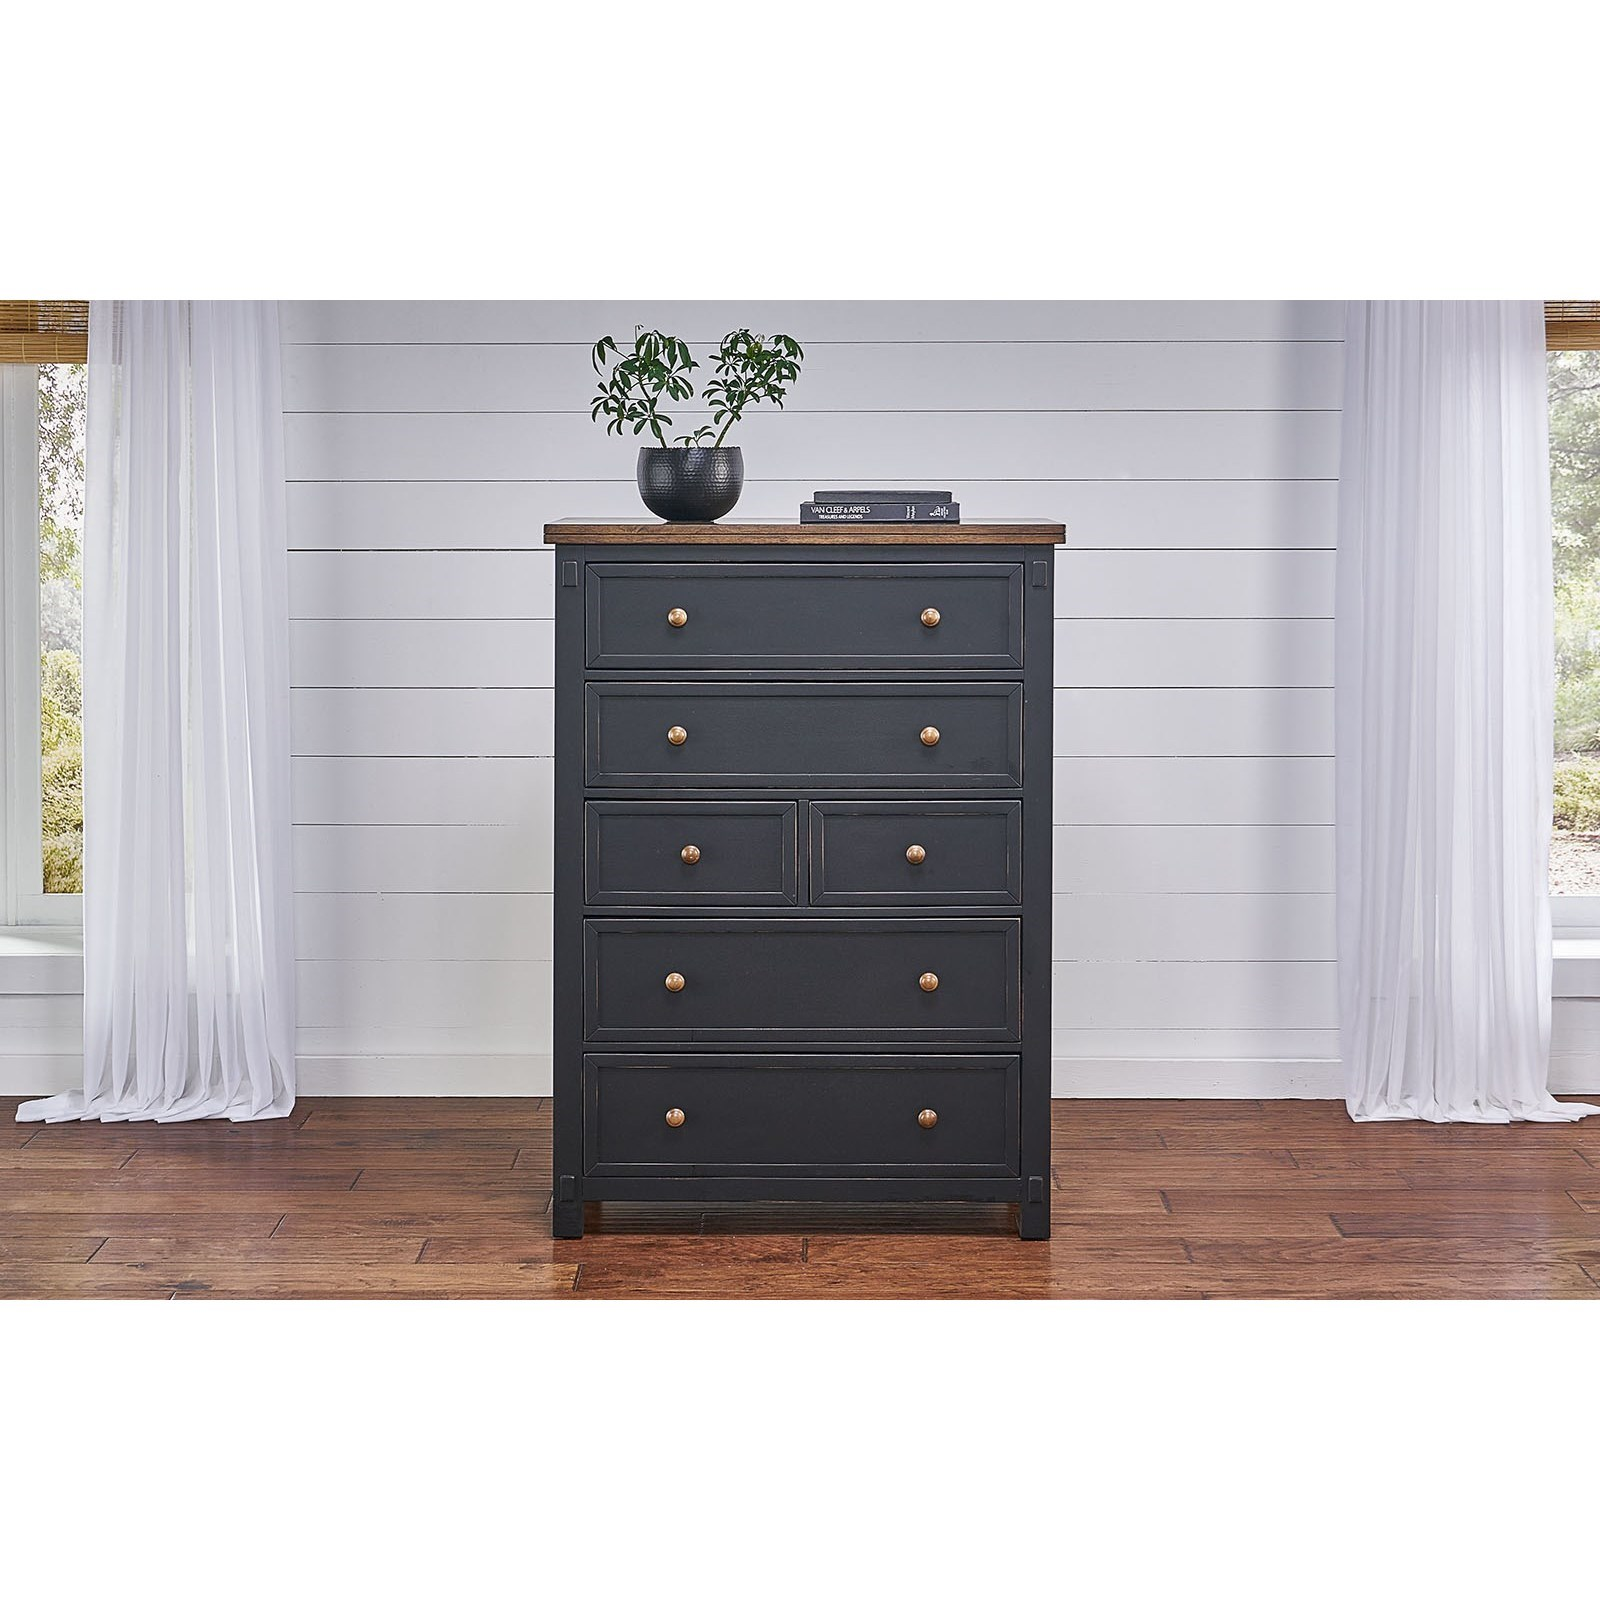 Stormy Ridge 6-Drawer Chest by AAmerica at Stuckey Furniture